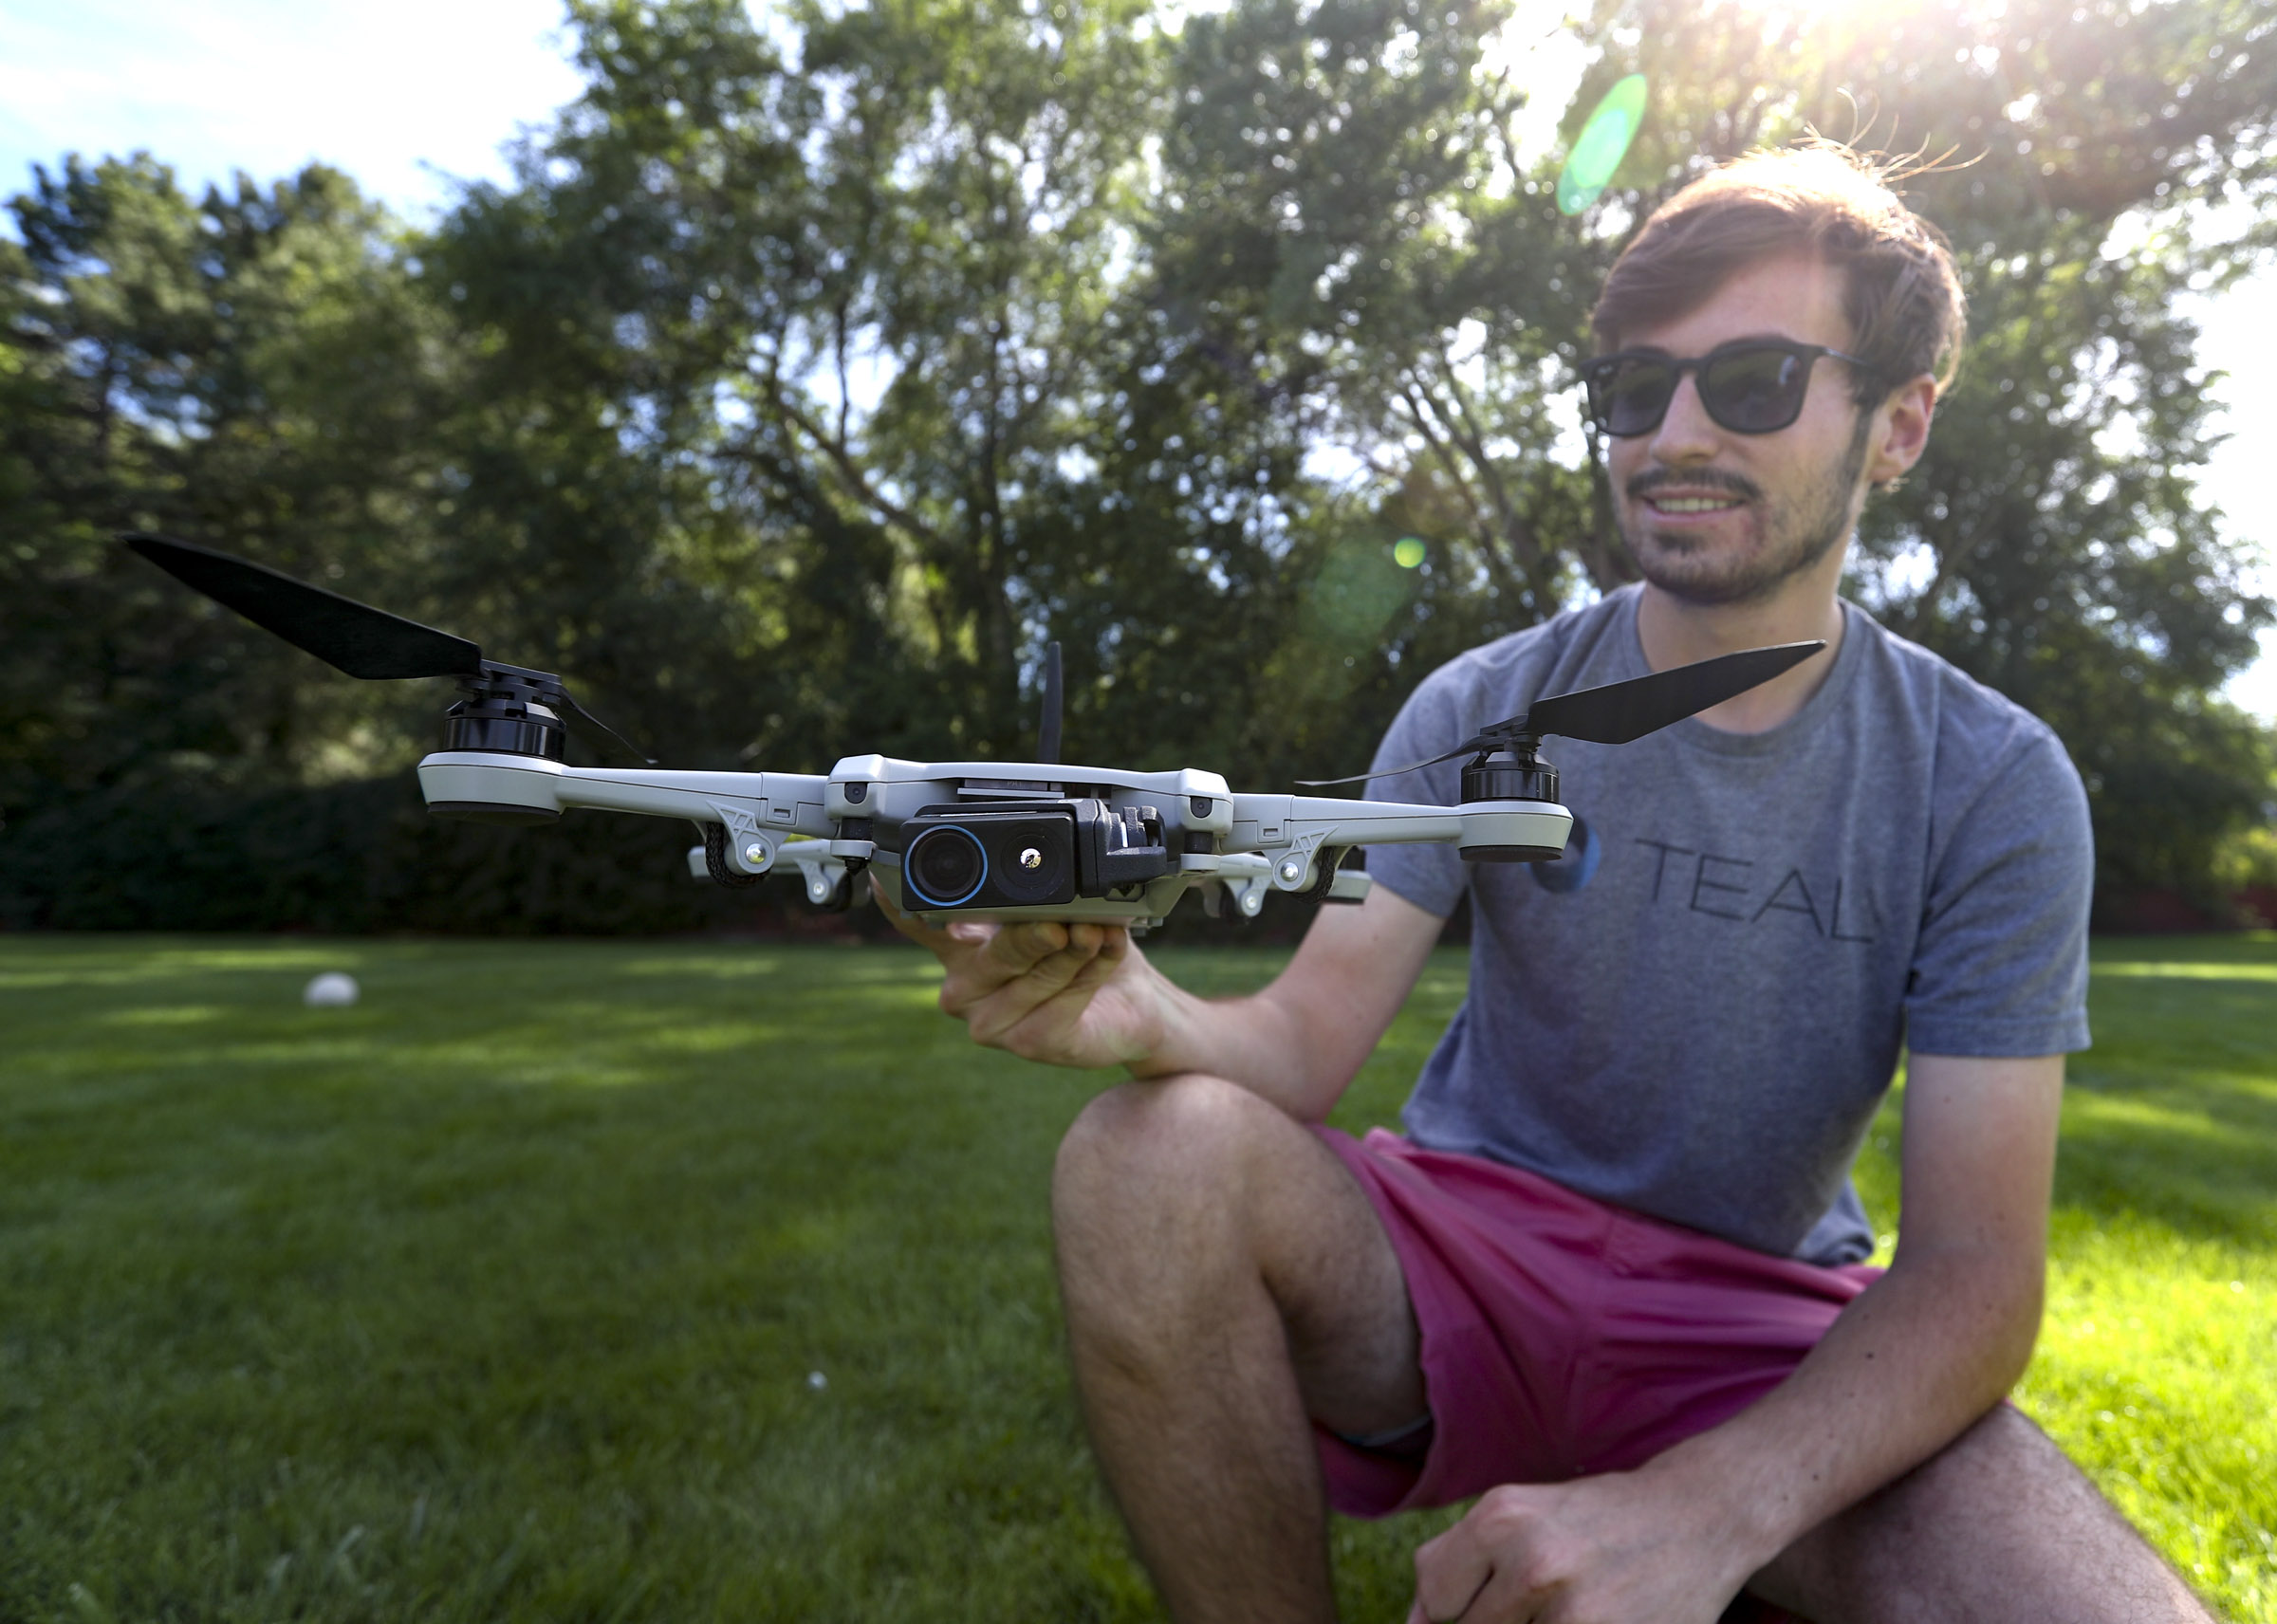 Teal Drones founder George Matus poses with the company's new Golden Eagle drone near the firm's offices in Holladay on Wednesday, Sept. 2, 2020.